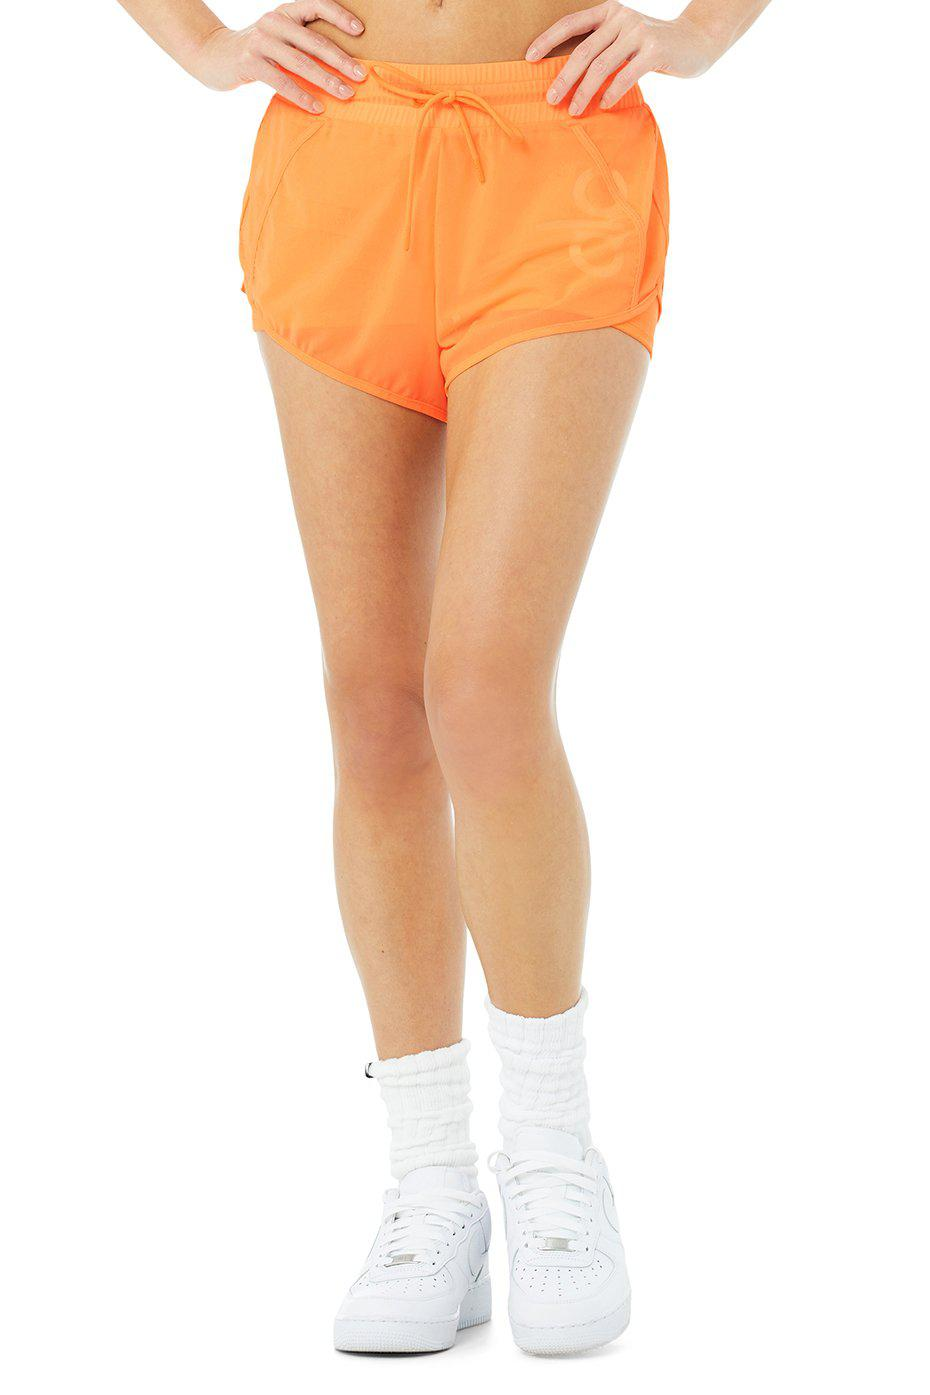 Ambience Short - Neon Apricot/White